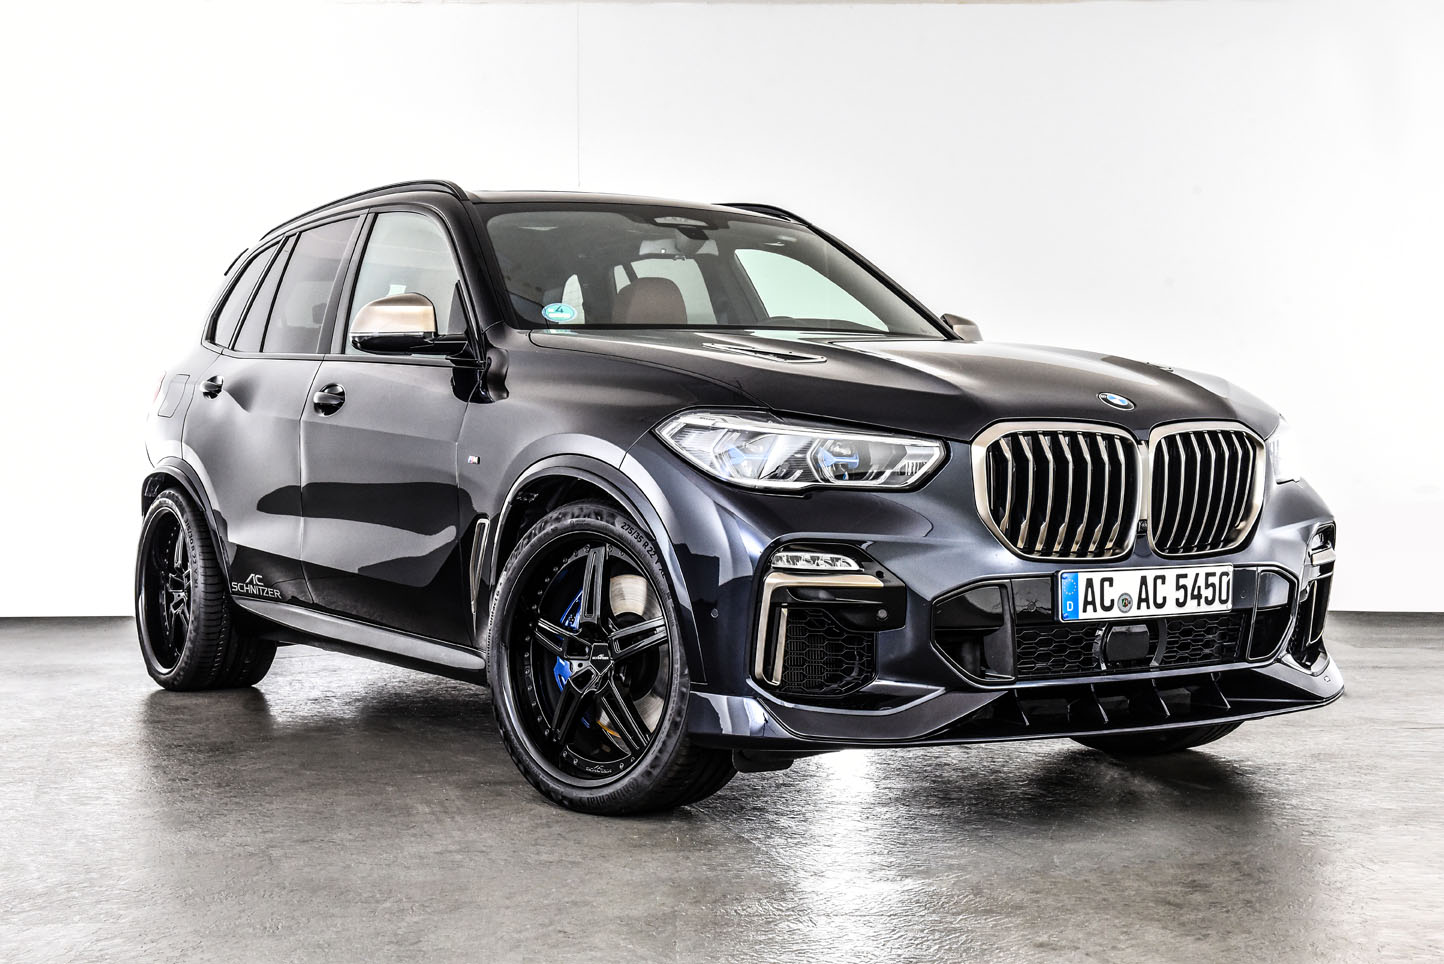 2019 Bmw X5 With Ac Schnitzer Body Kit Looks Like A Beast